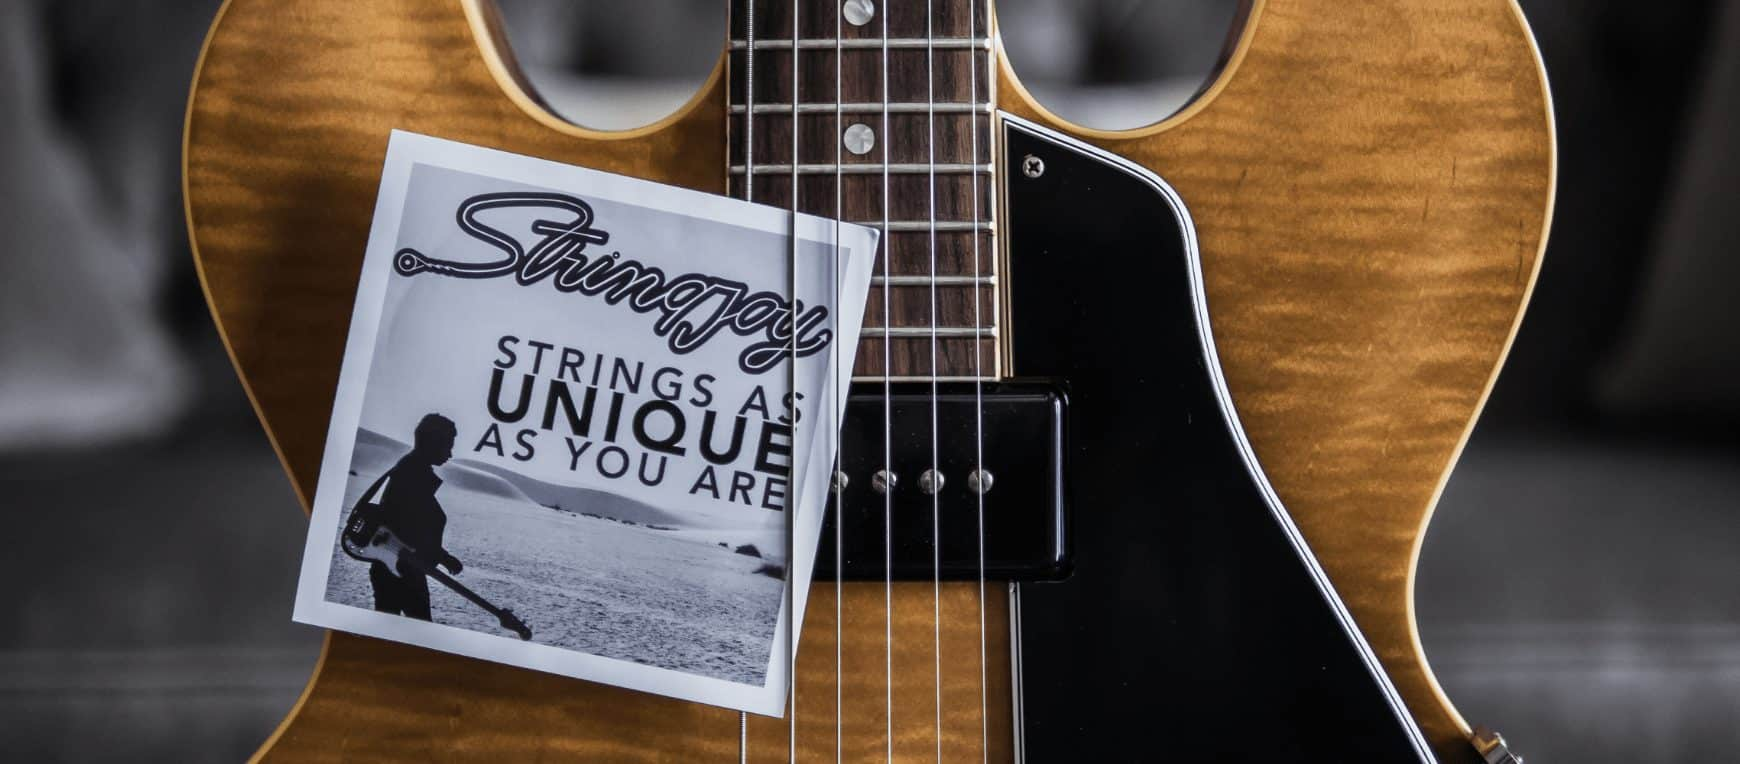 3 Guitar String Problems We Fix